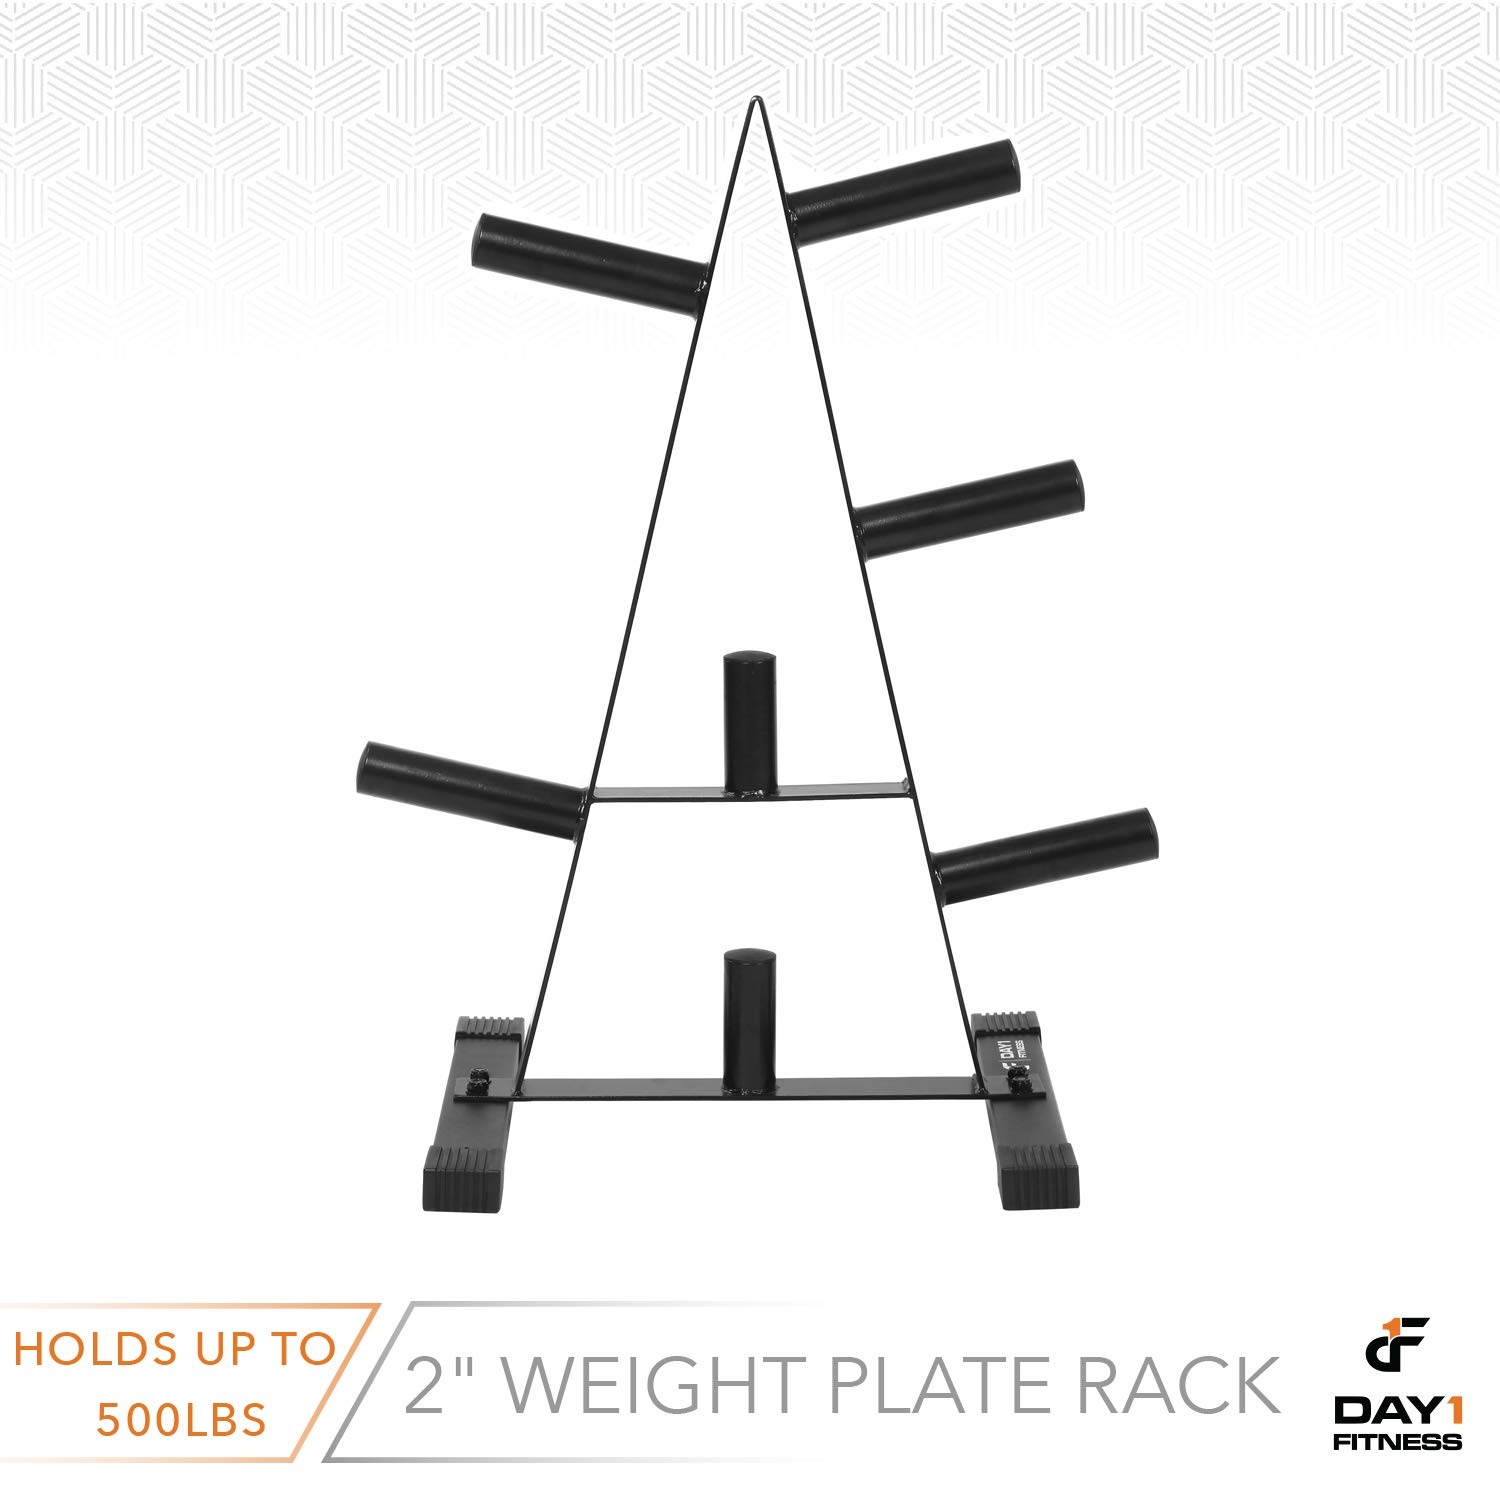 Olympic Weight Plate Rack, Holds up to 500lb of 2'' Weights by D1F - Black Weight Holder Tree with 7 Branches for Stacking and Storing High Capacity Weights- Heavy-Duty, Durable Triangle Plate Racks by Day 1 Fitness (Image #5)